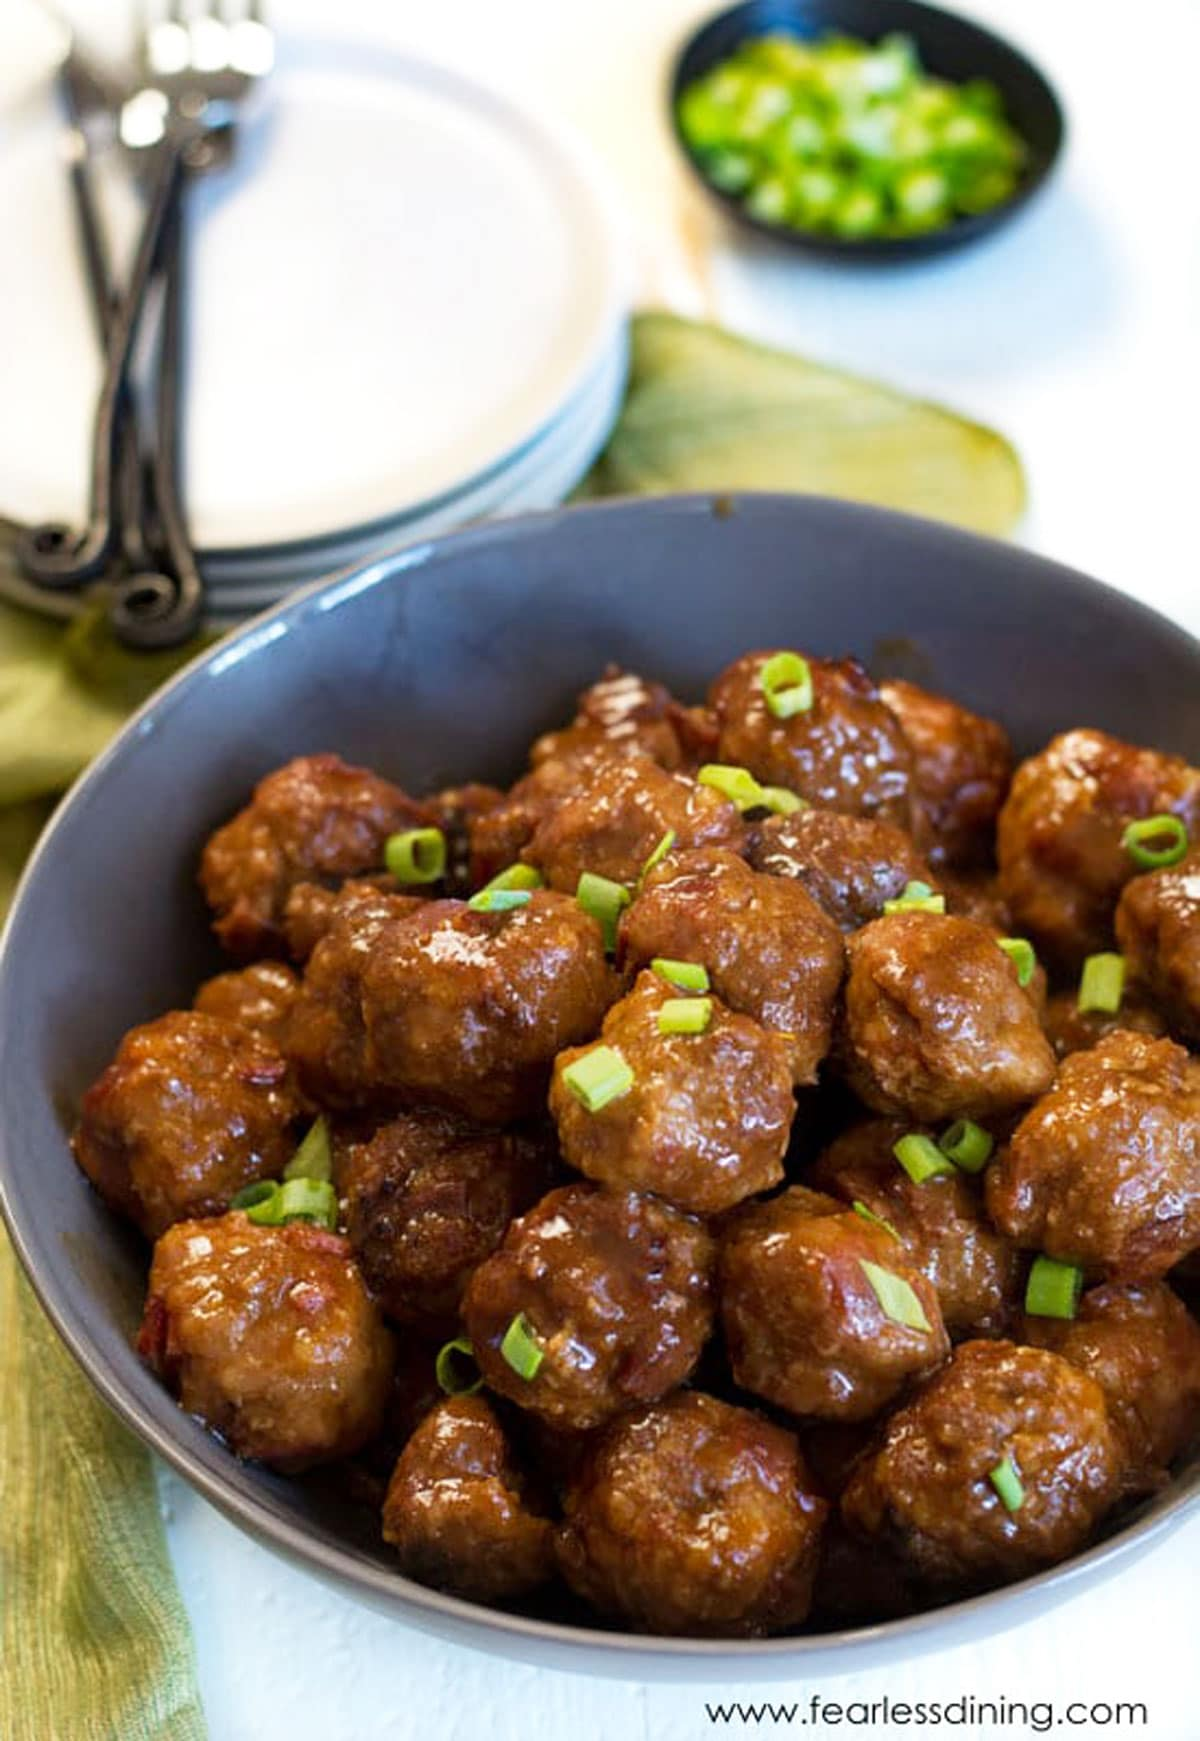 a large grey bowl full of meatballs. They are garnished with scallions